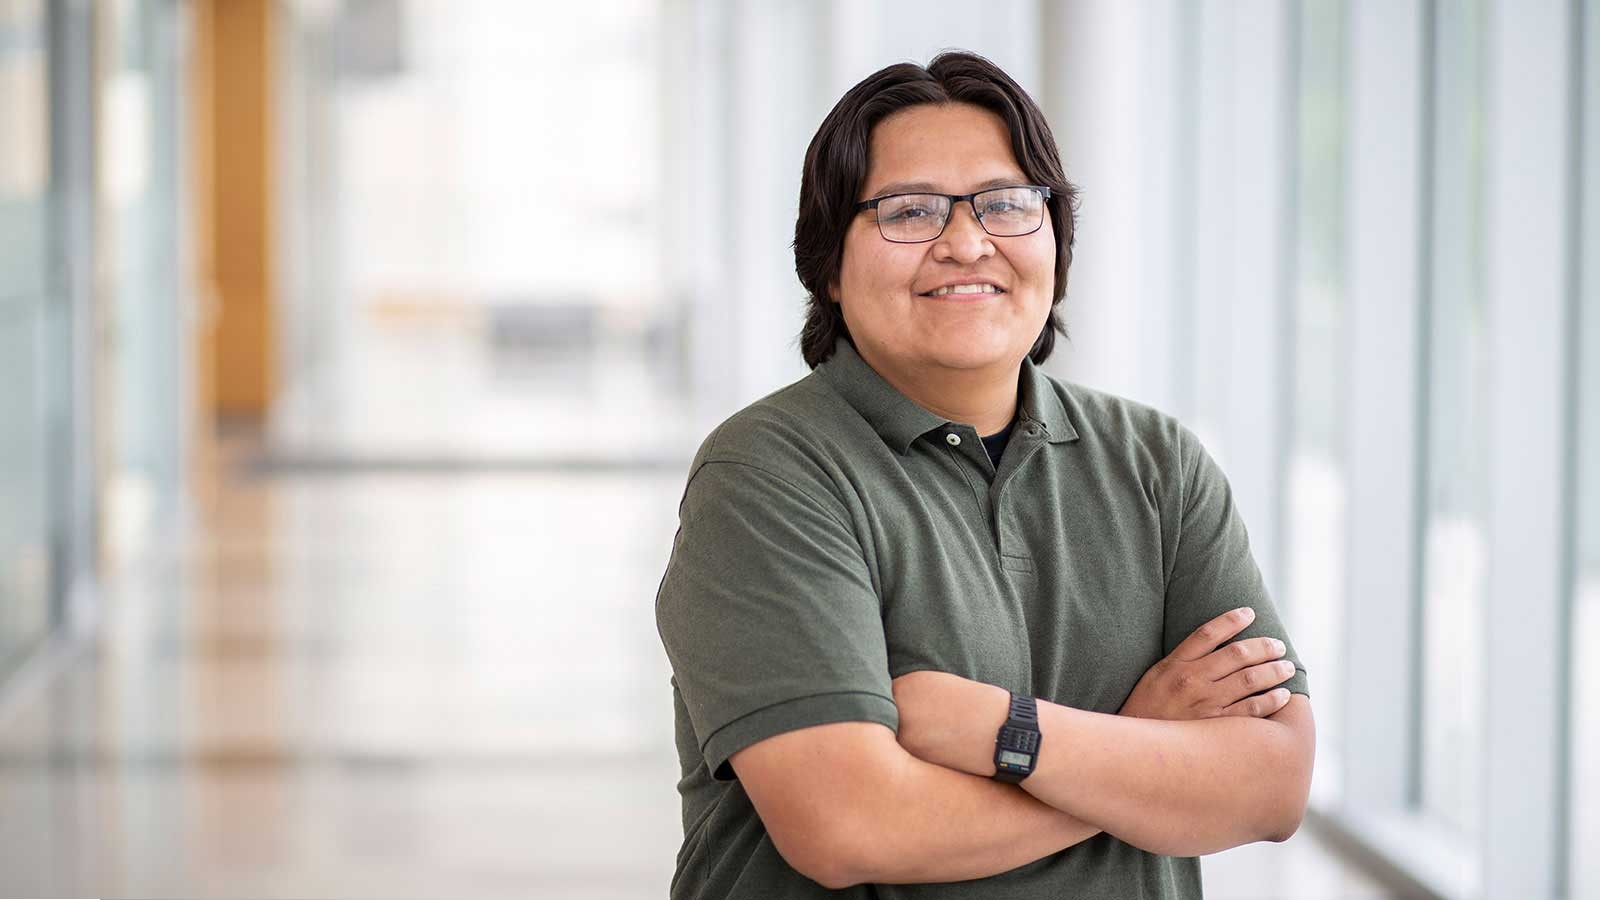 Native American Engineering Student Featured in Winds of Change